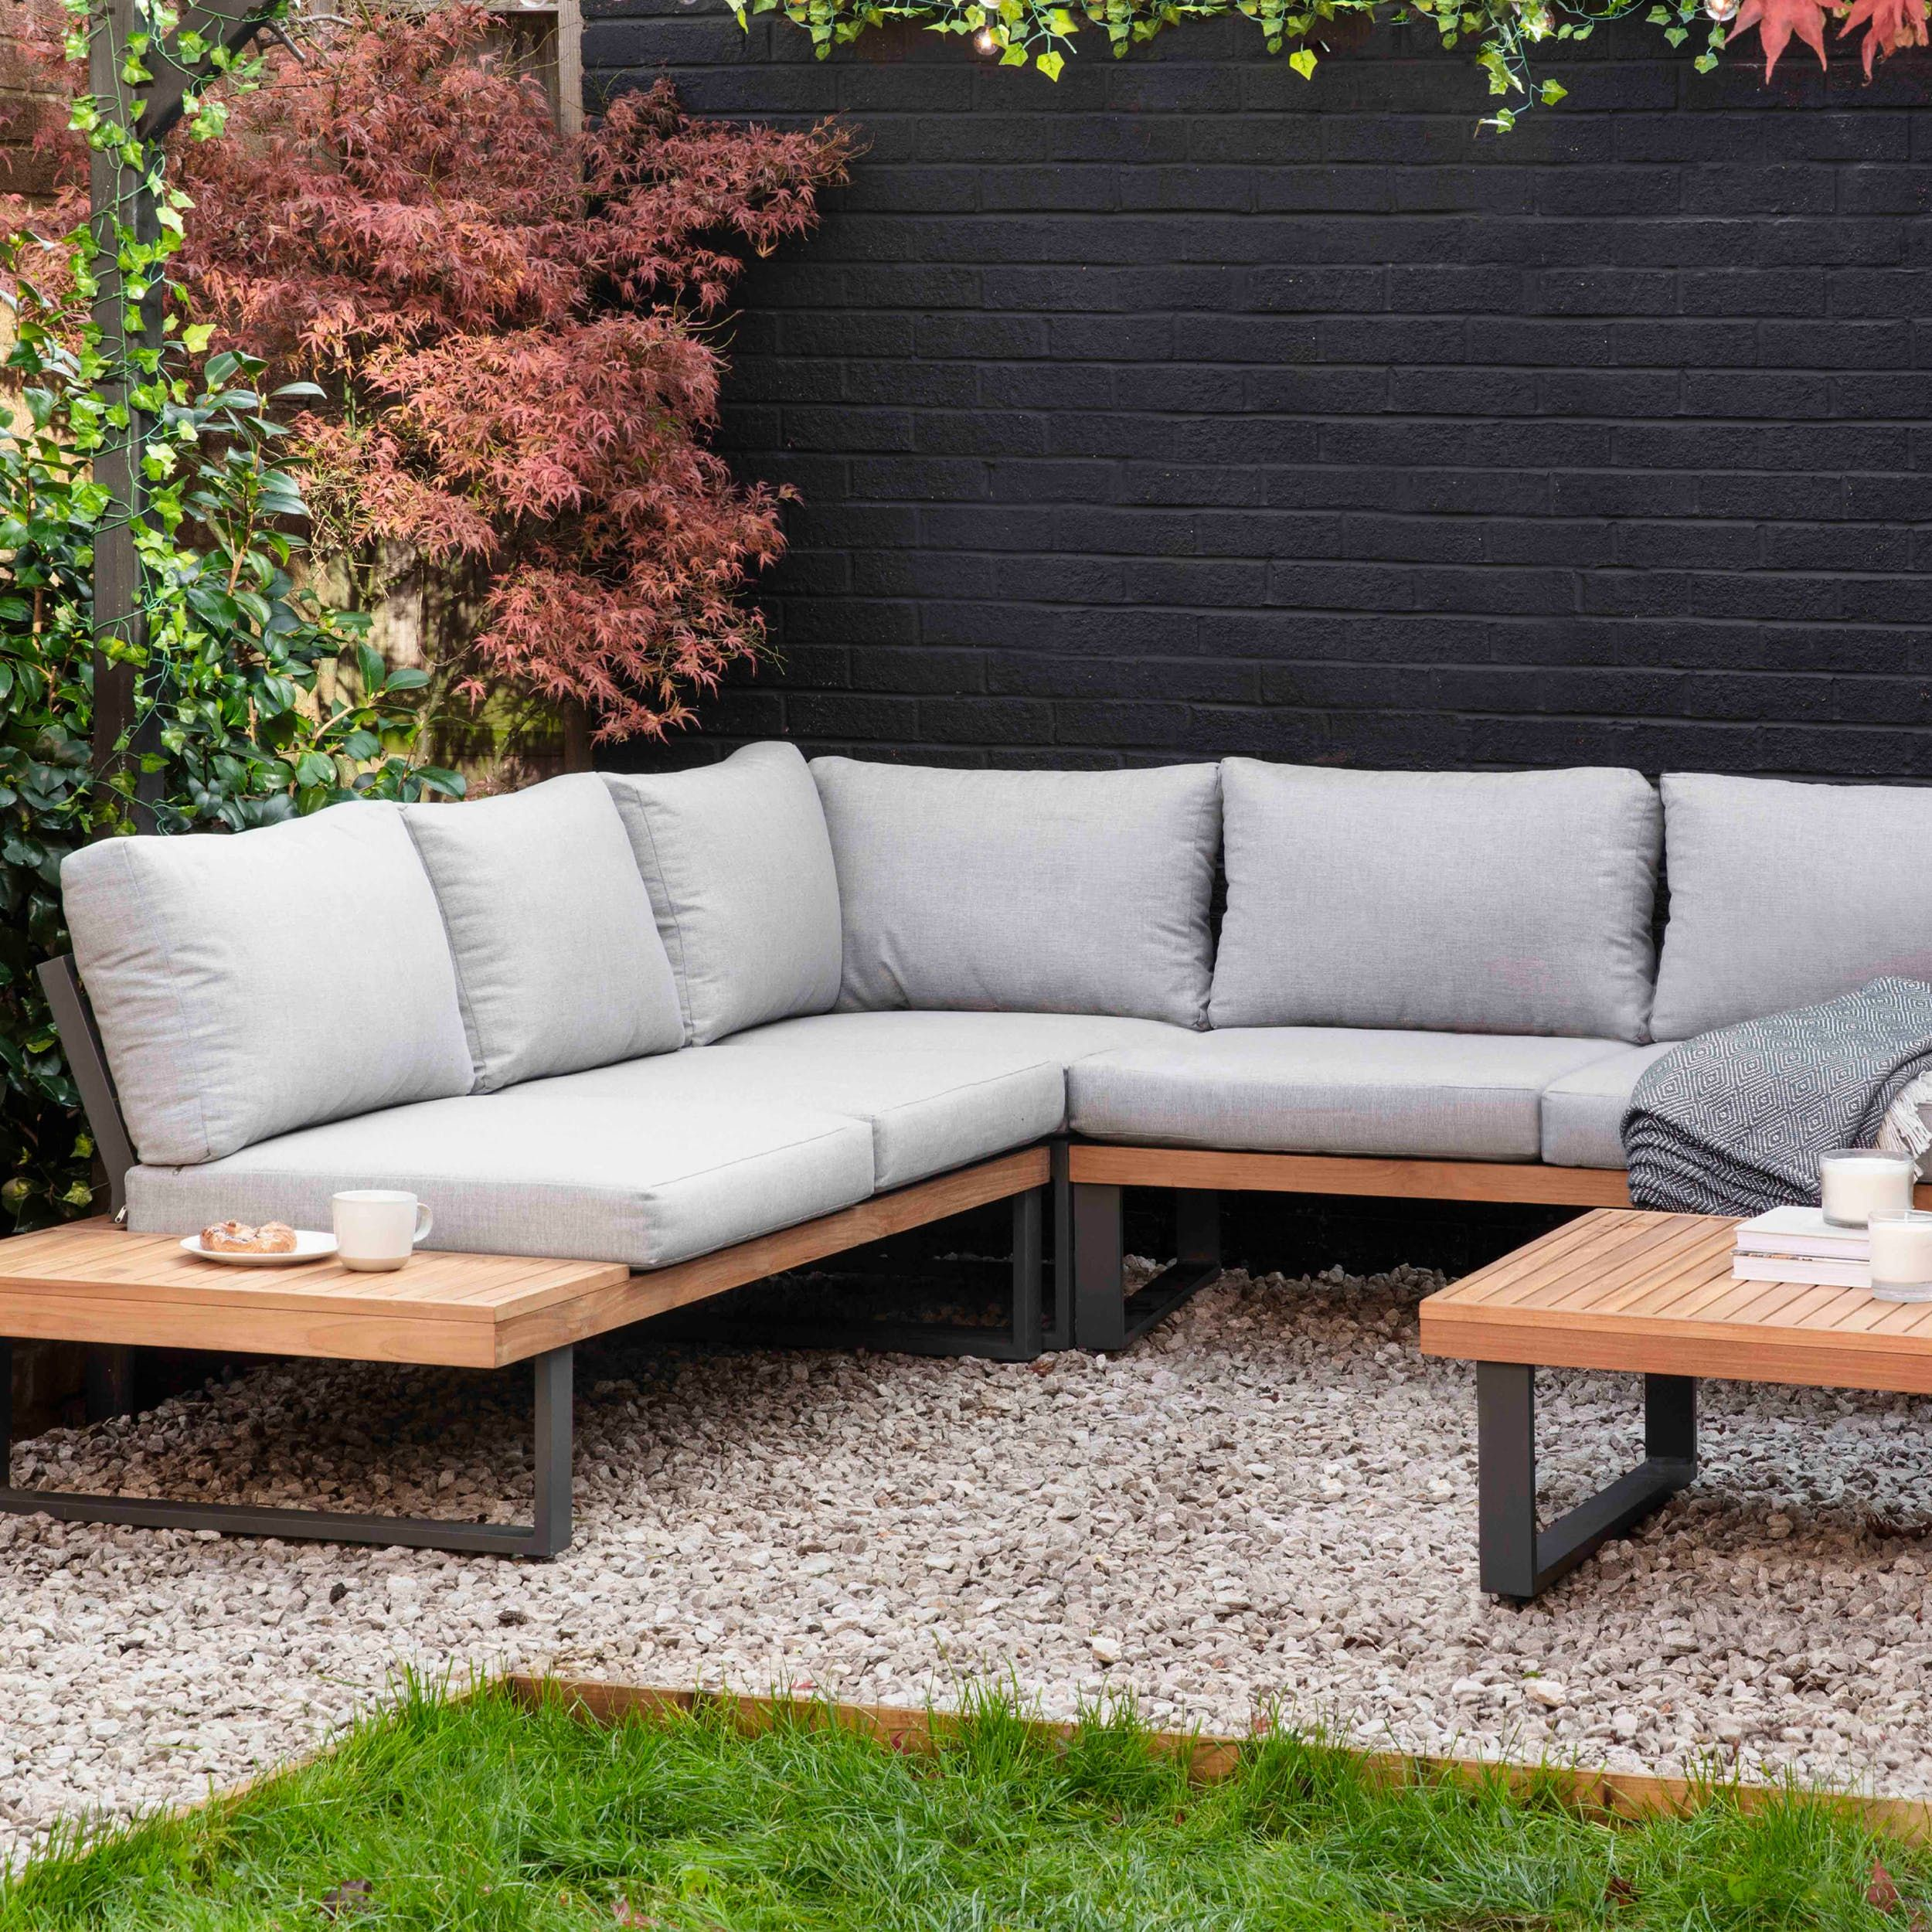 Sleek And Contemporary The Amberley Sofa Set Is The Perfect Fit For Modern Patio And Decking Areas Using Th In 2020 Garden Sofa Set Outdoor Sofa Sets Corner Sofa Set